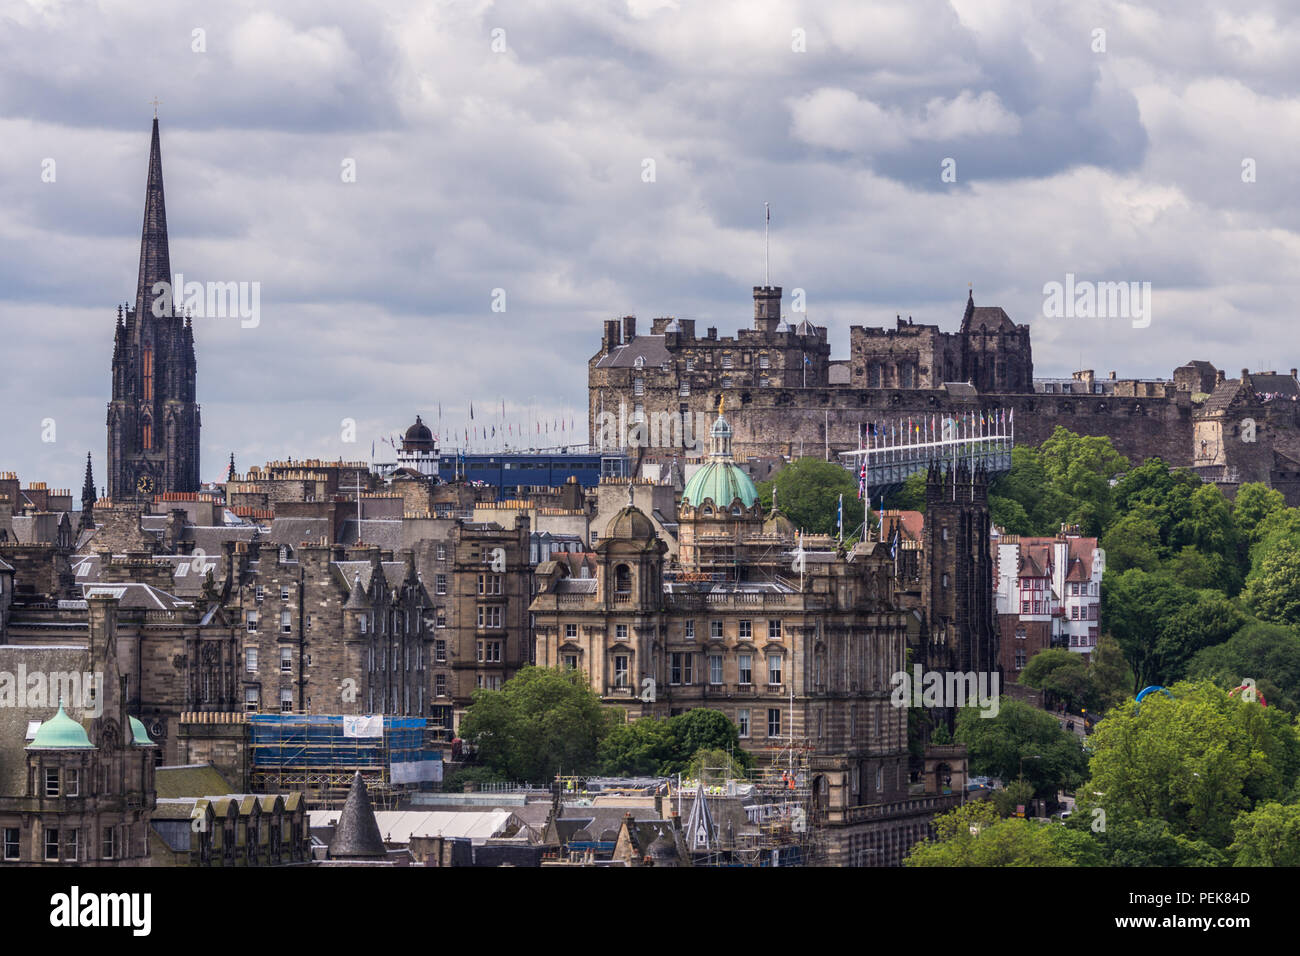 Edinburgh, Scotland, UK - June 13, 2012: Looking from Calton Hill upon dark brown castle and New College buildings under heavy cloudscape. Spire of St - Stock Image